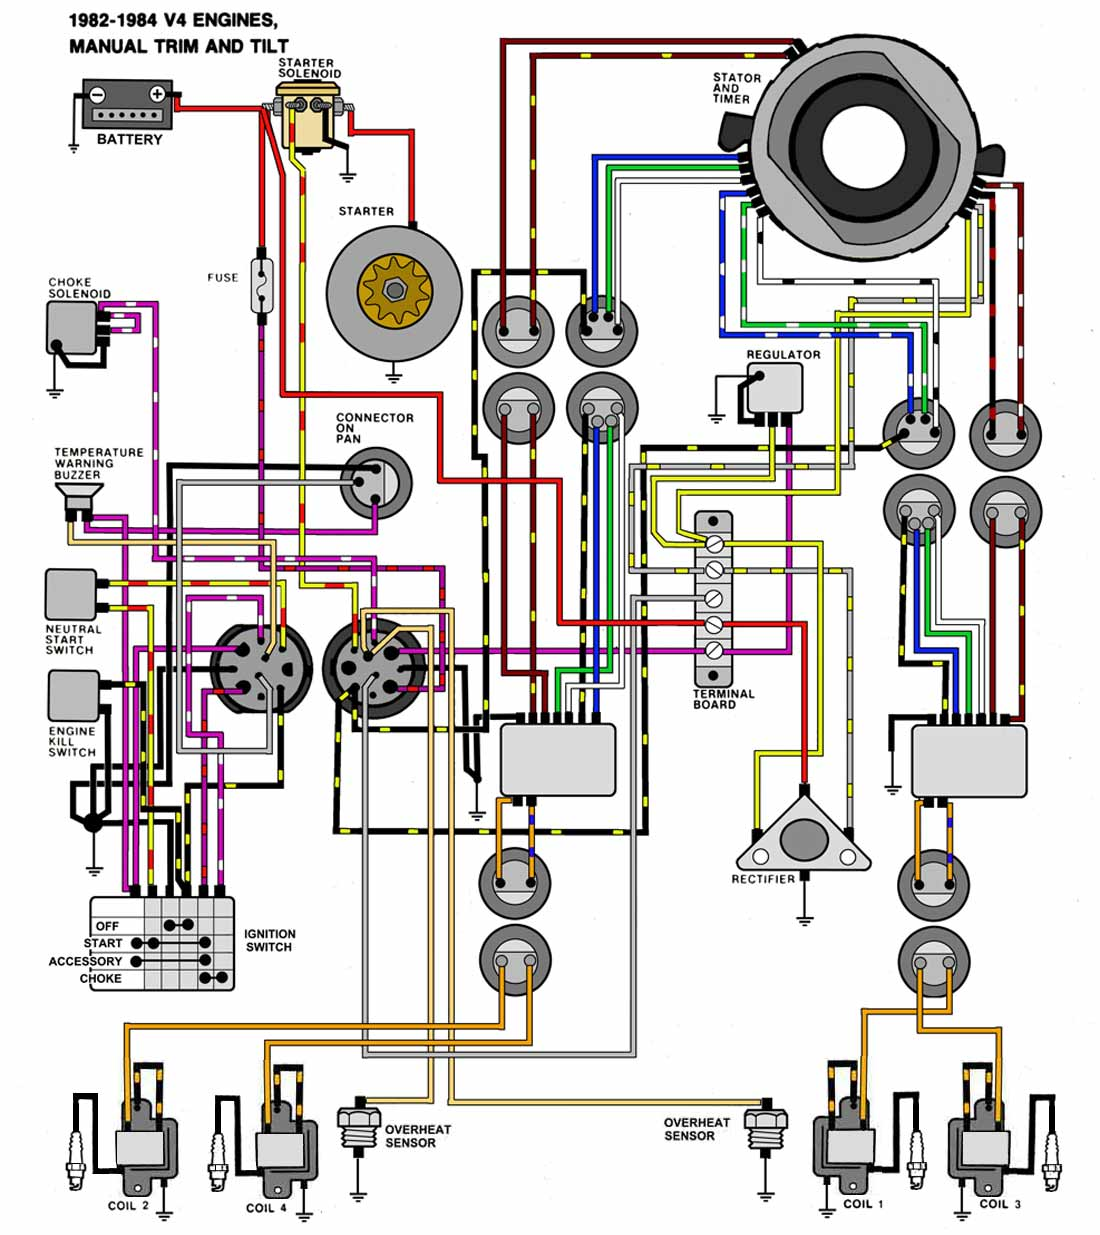 small resolution of 70 hp evinrude outboard motor wiring diagram 70 hp johnson 1990 60 hp evinrude wiring diagram schematic